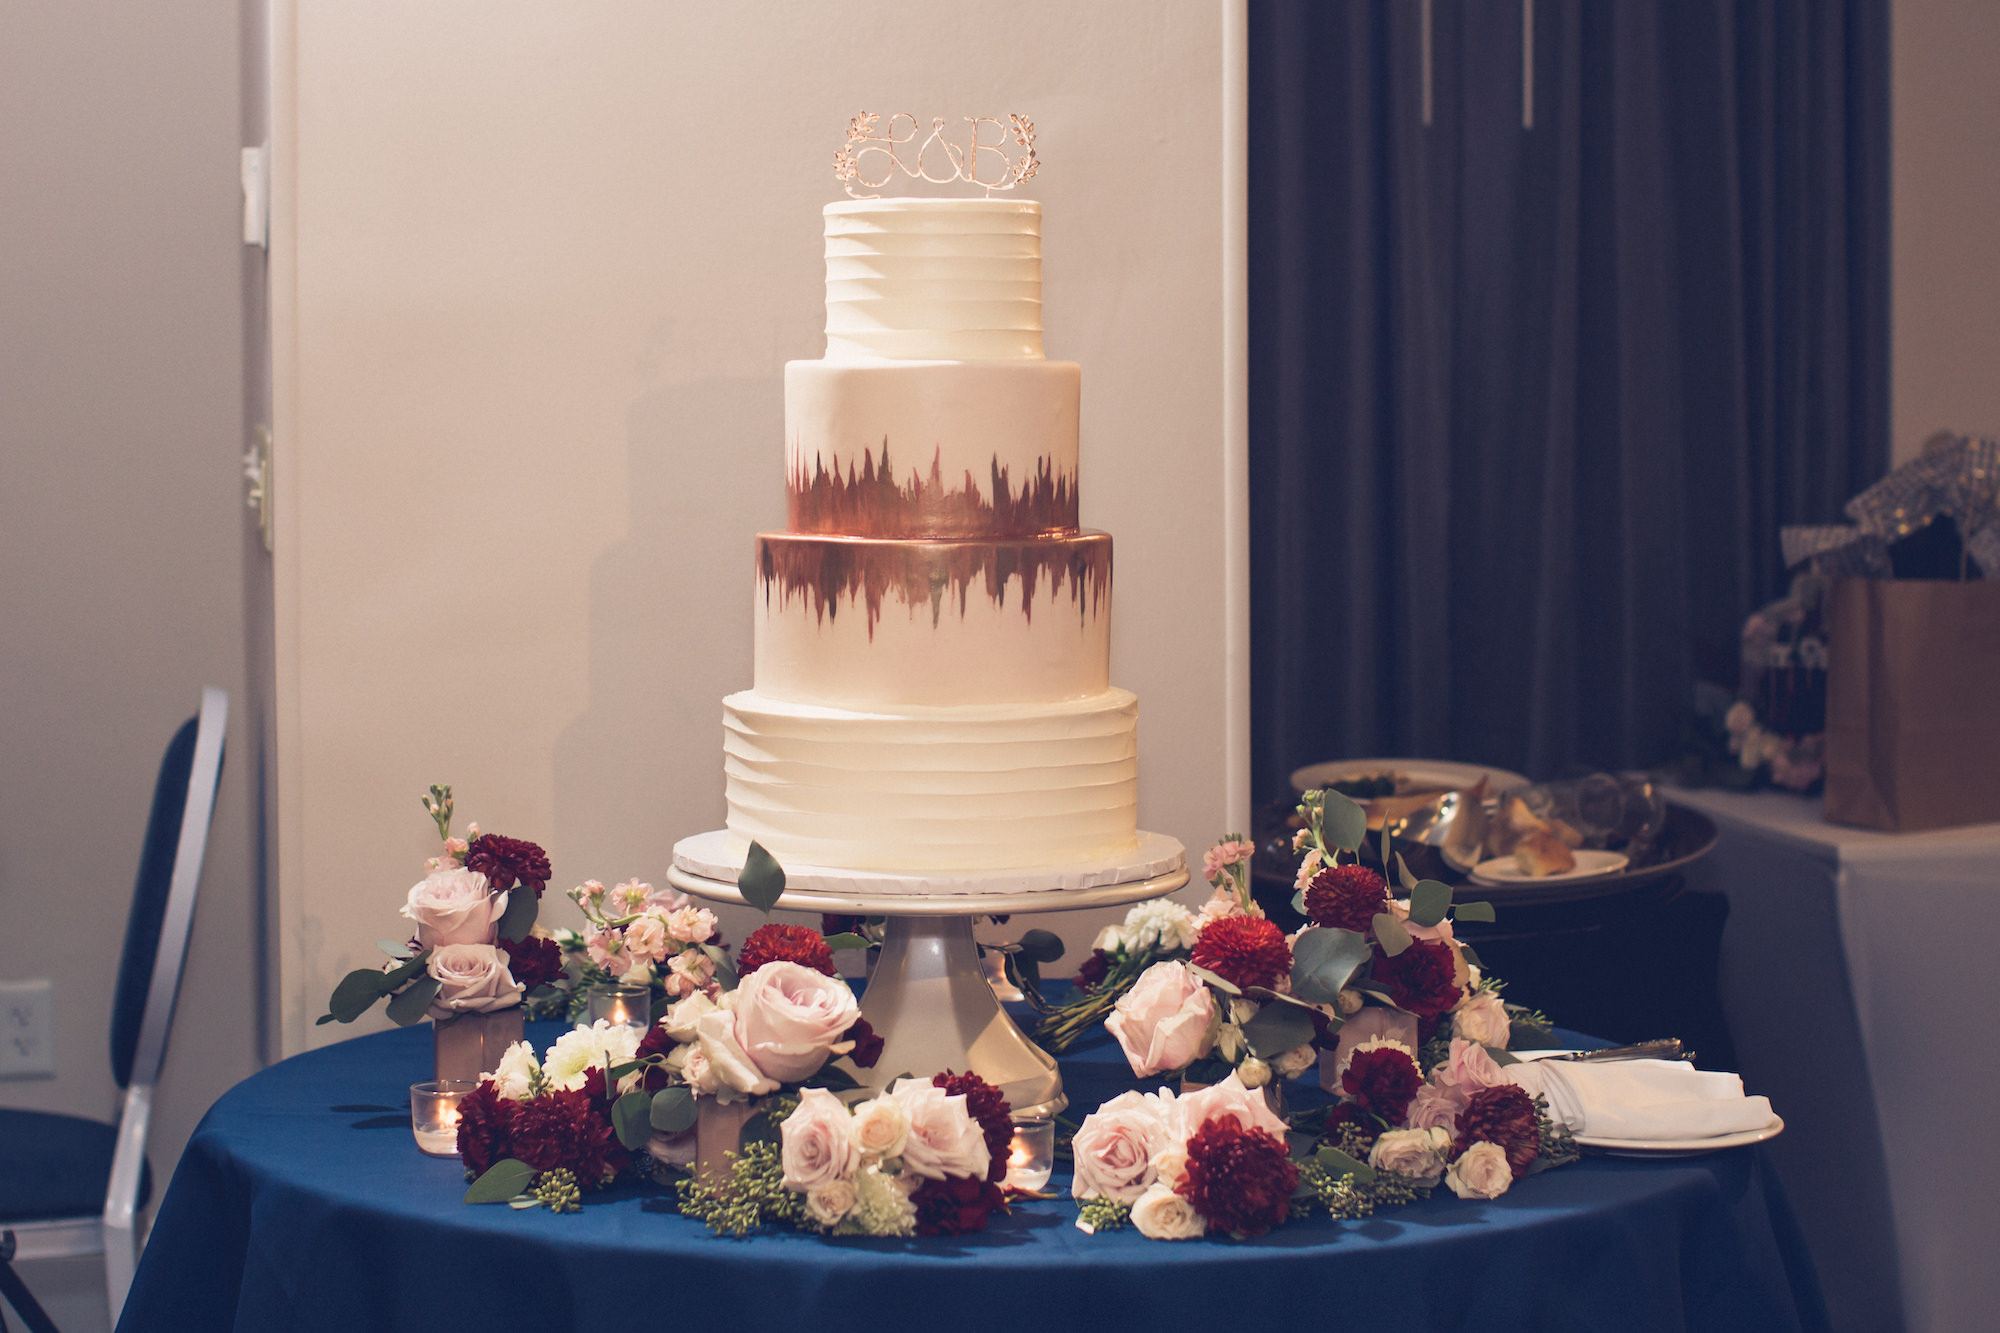 Classic Elegant Four Tier White with Painted Rose Gold Accent and Custom Cake Topper, Blush Pink Roses, Burgundy Flowers and Greenery Floral Arrangements | Wedding Photographer Luxe Light Images | Tampa Bay Wedding Cake The Artistic Whisk